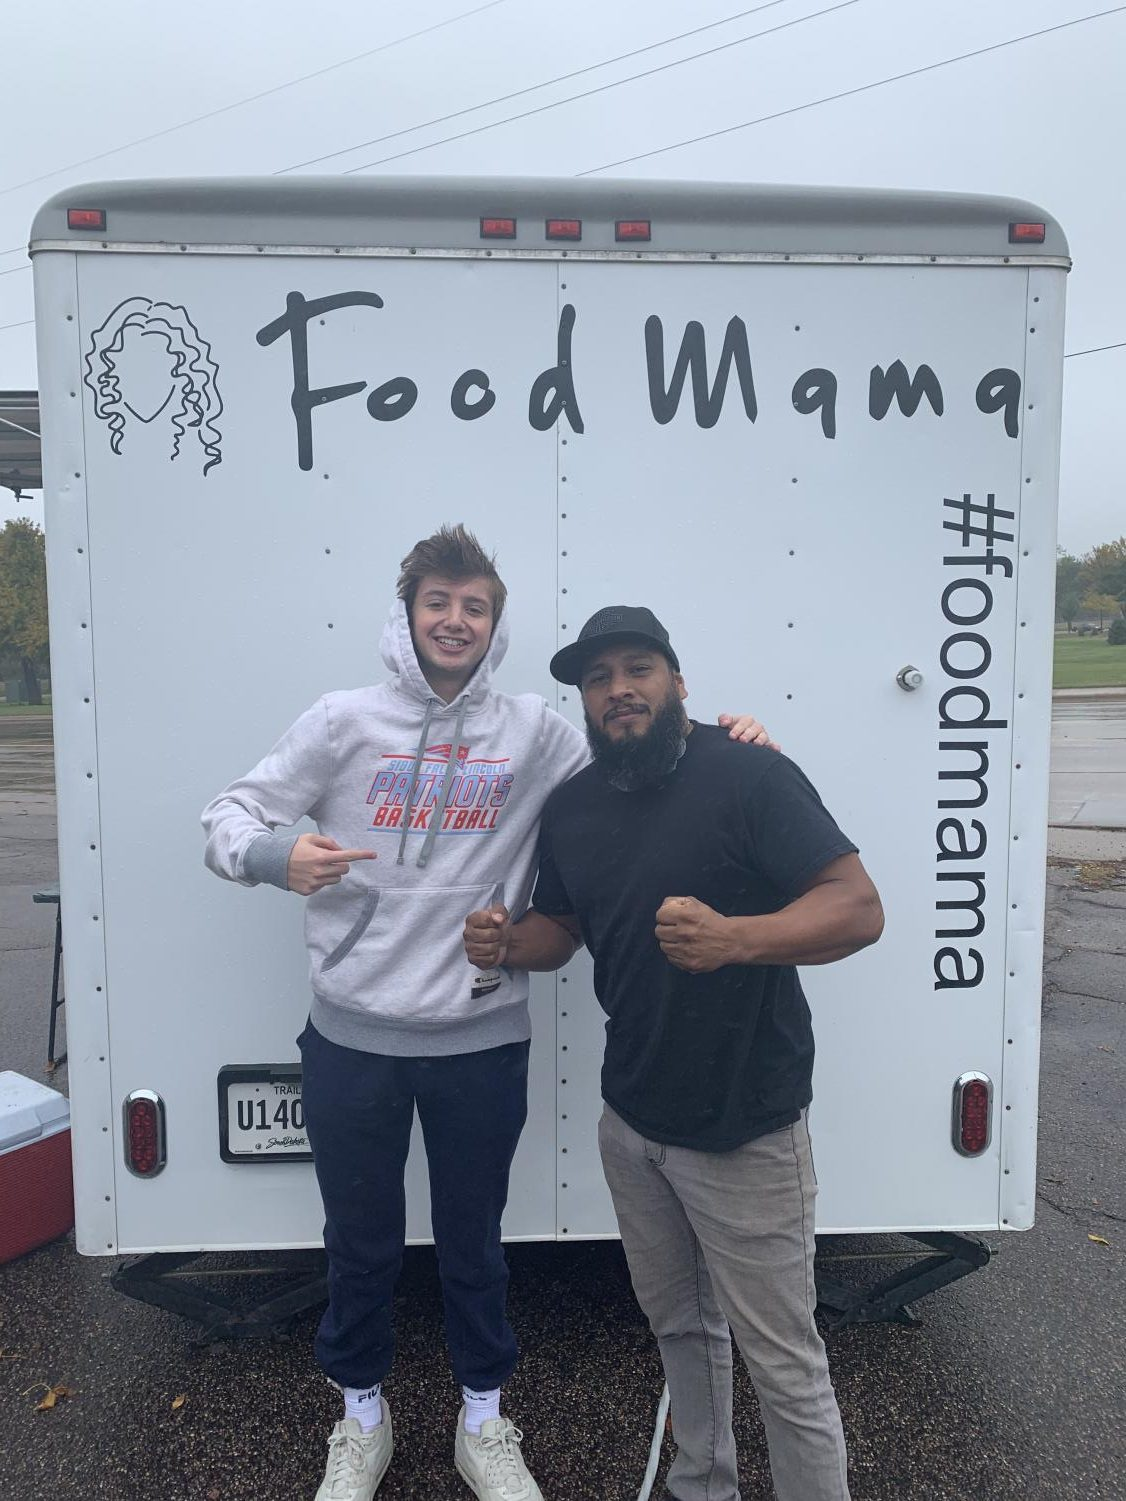 Food Mama is located at the corner of Cliff and 11th.